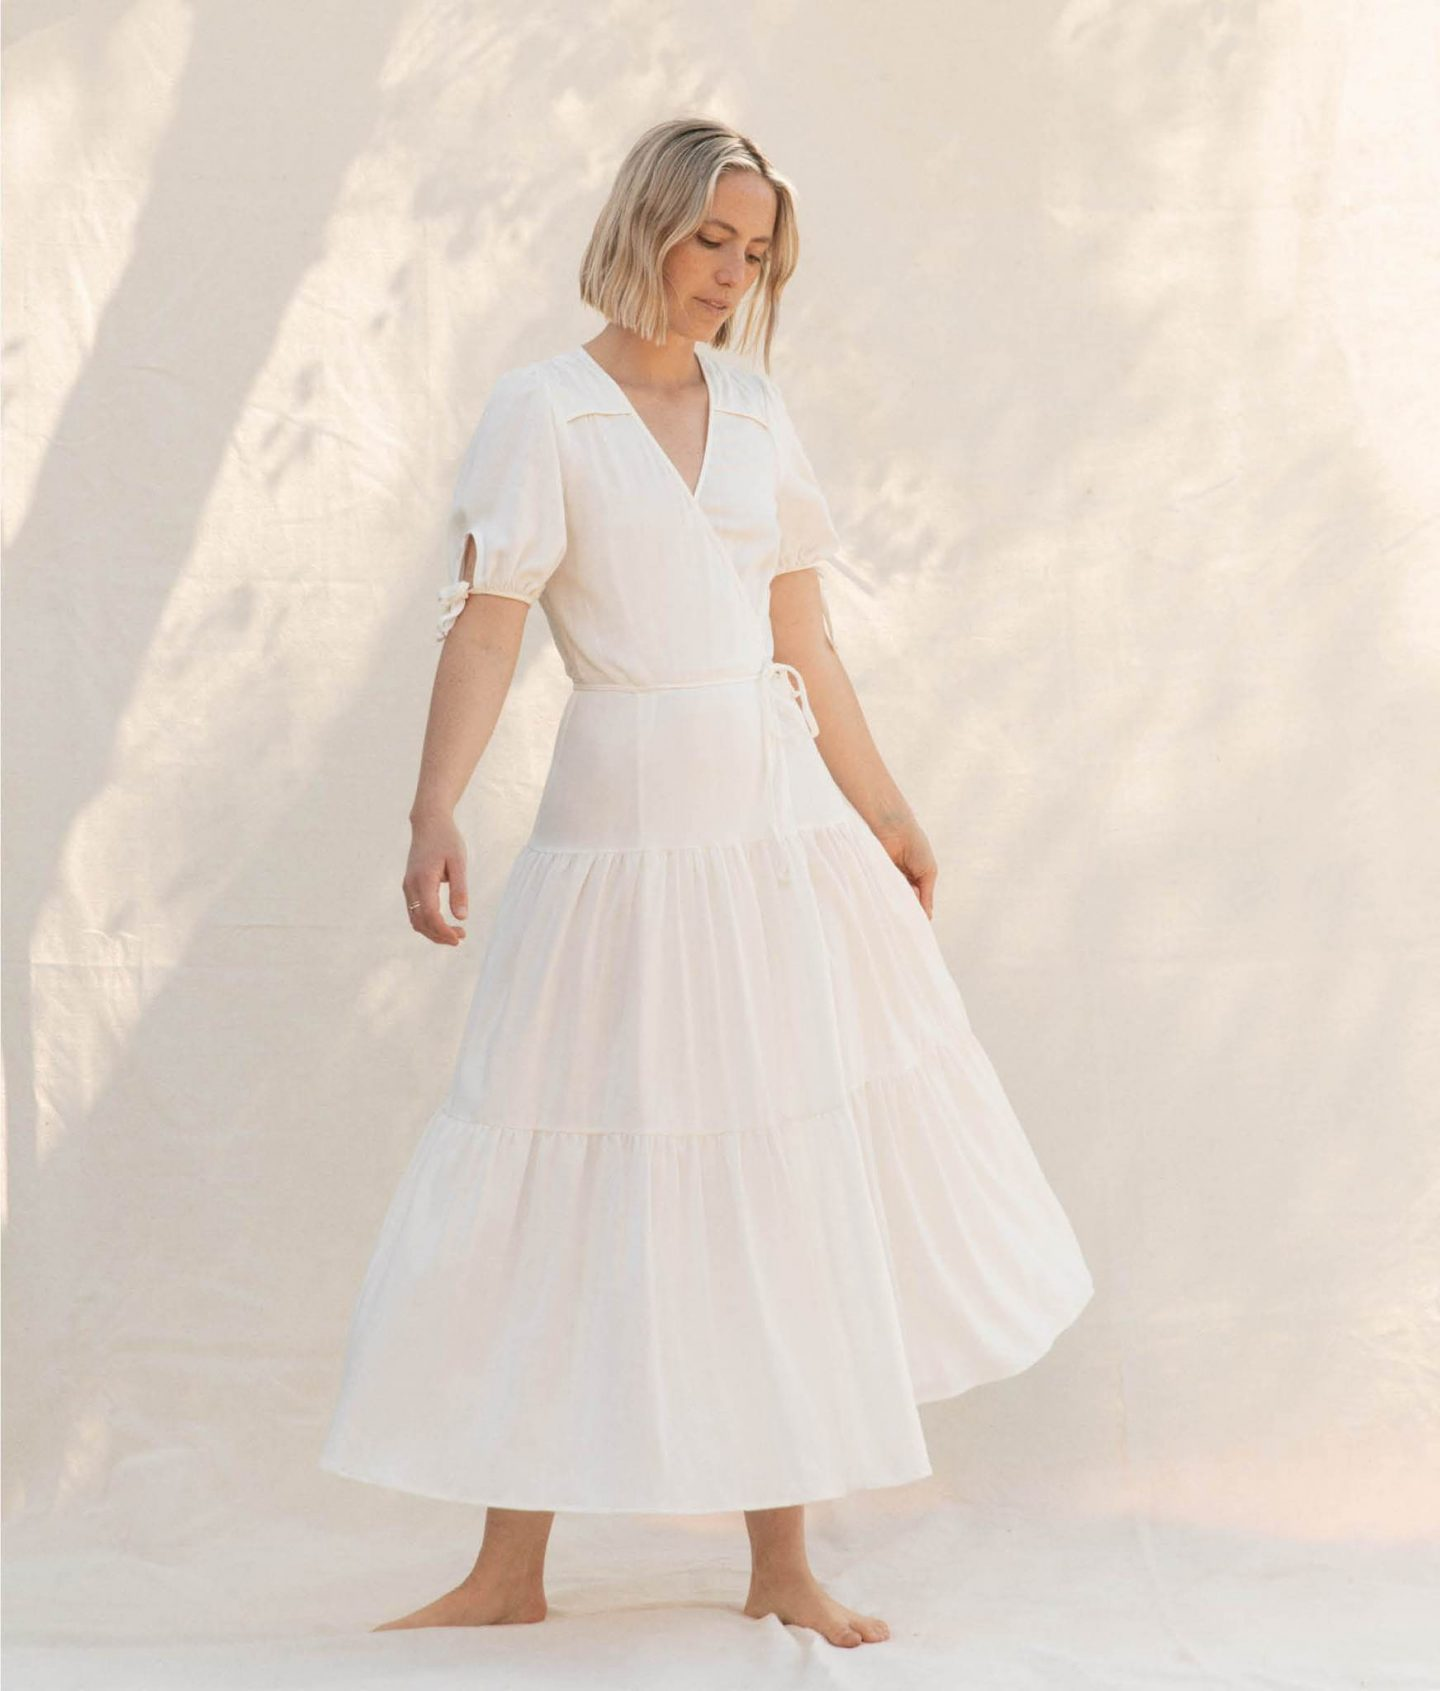 where to find ethical wedding dresses